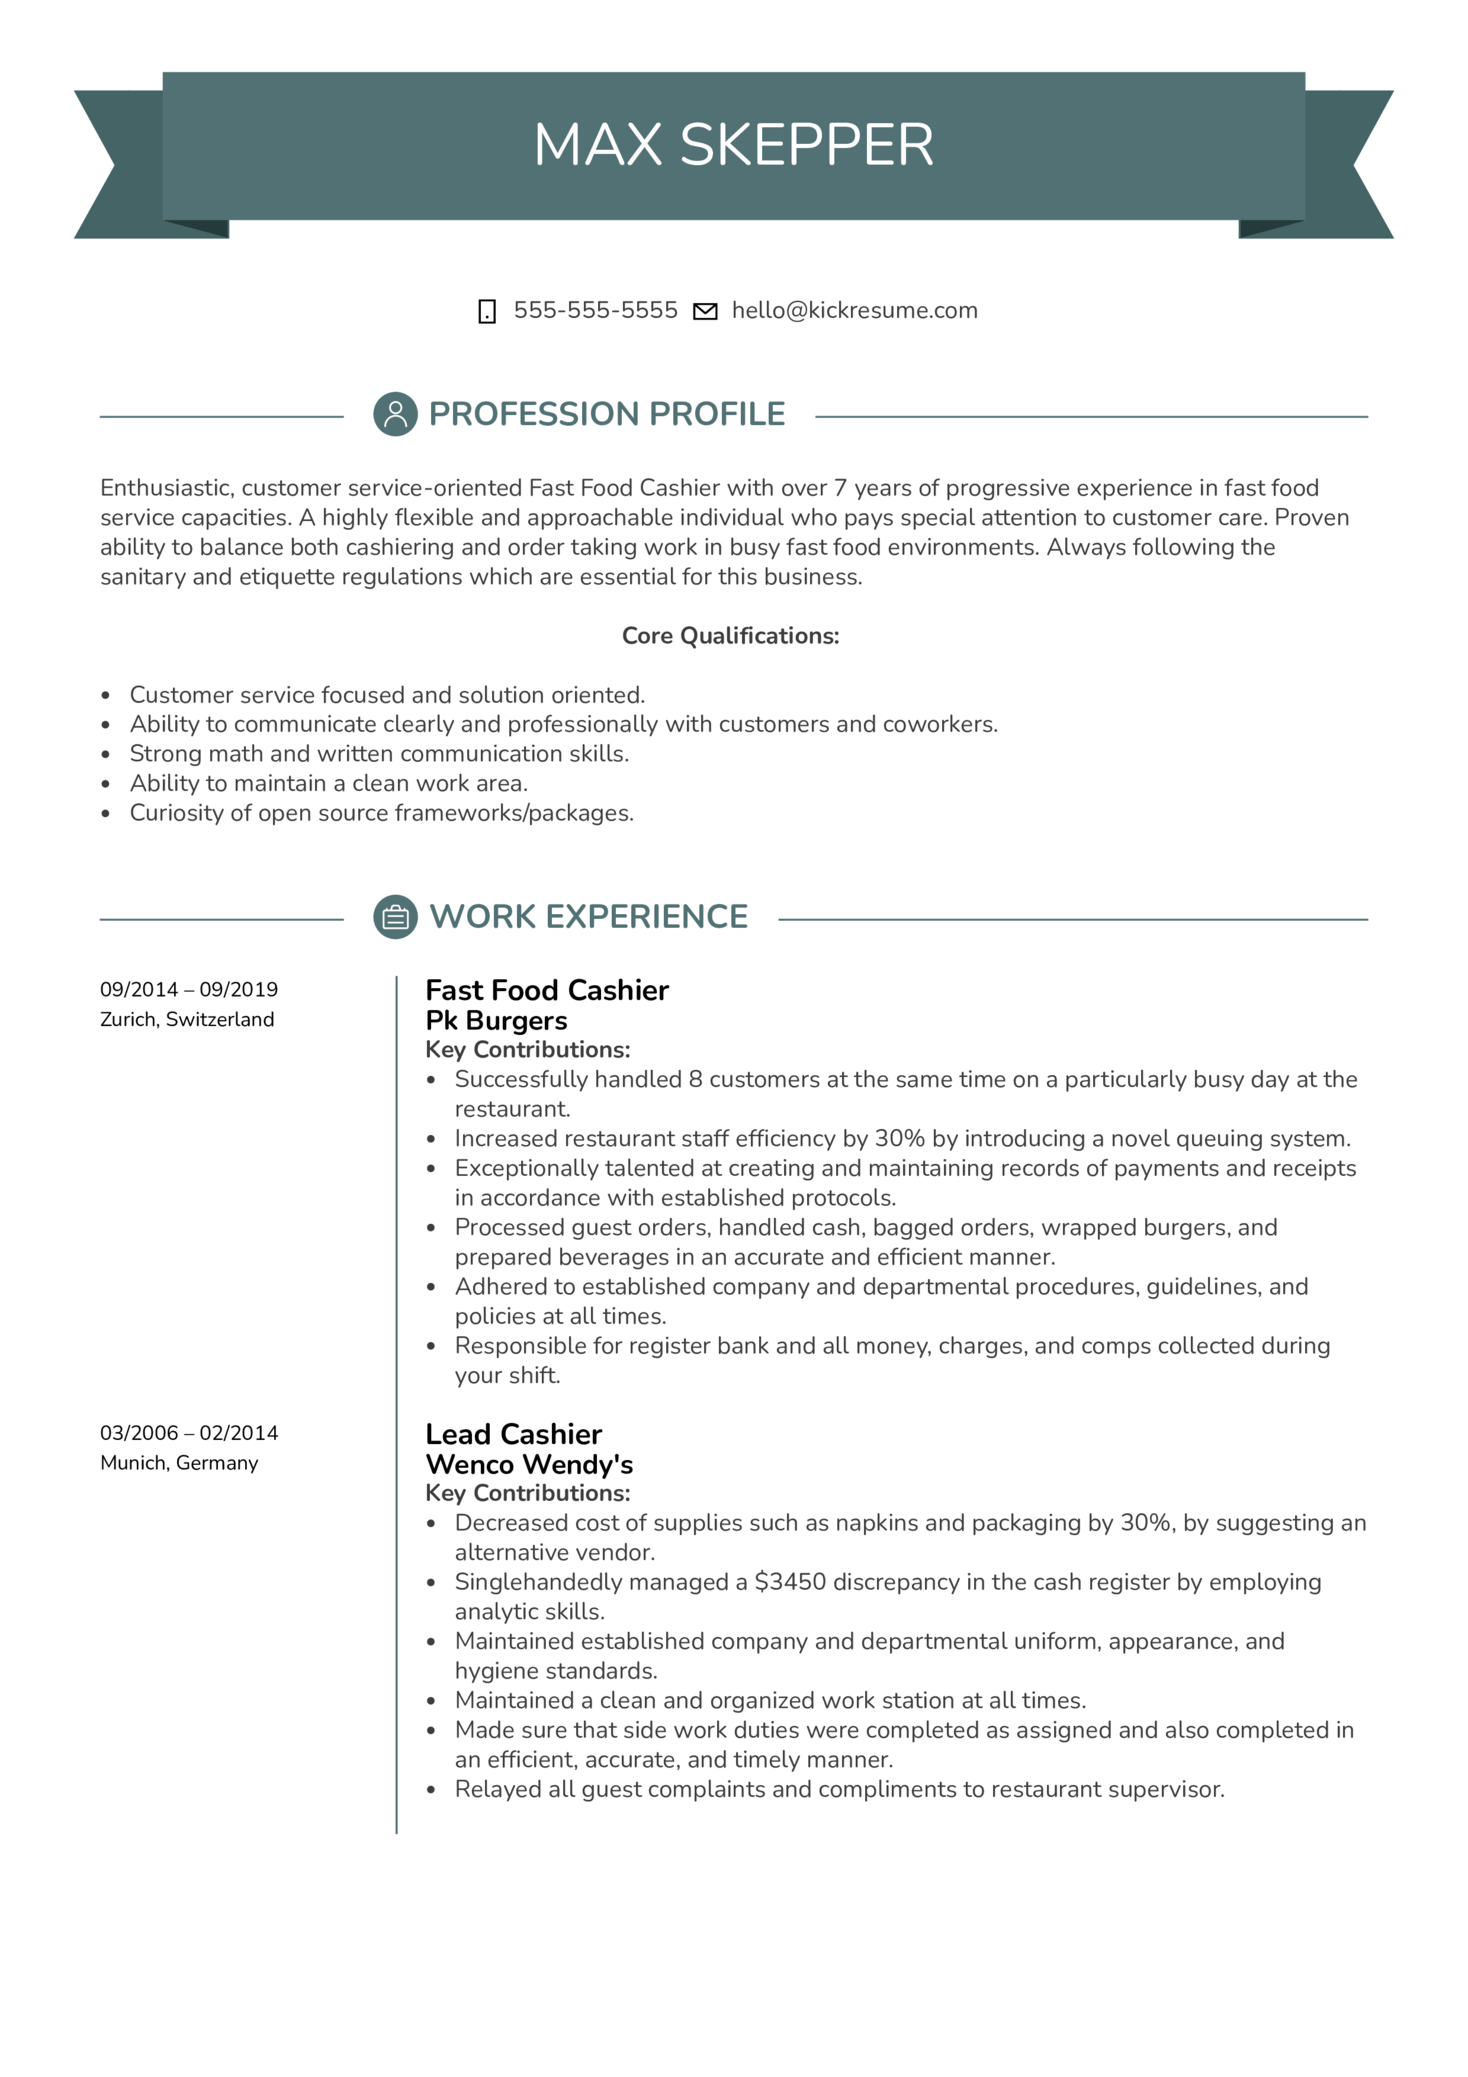 Fast Food Cashier Resume Example (Part 1)